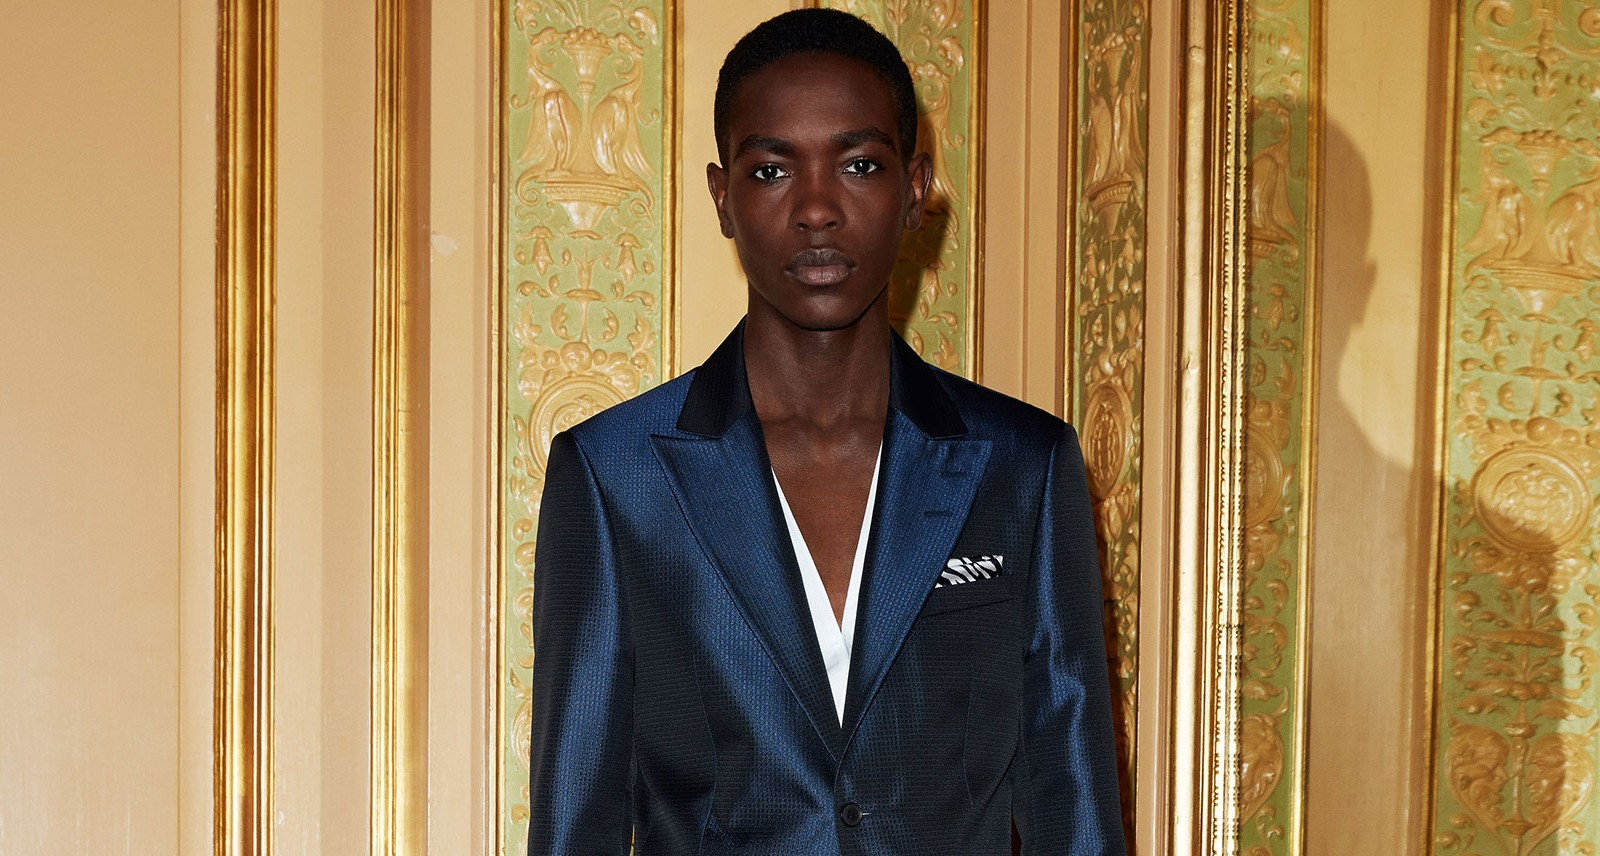 How to Pull Off the Holiday Suit